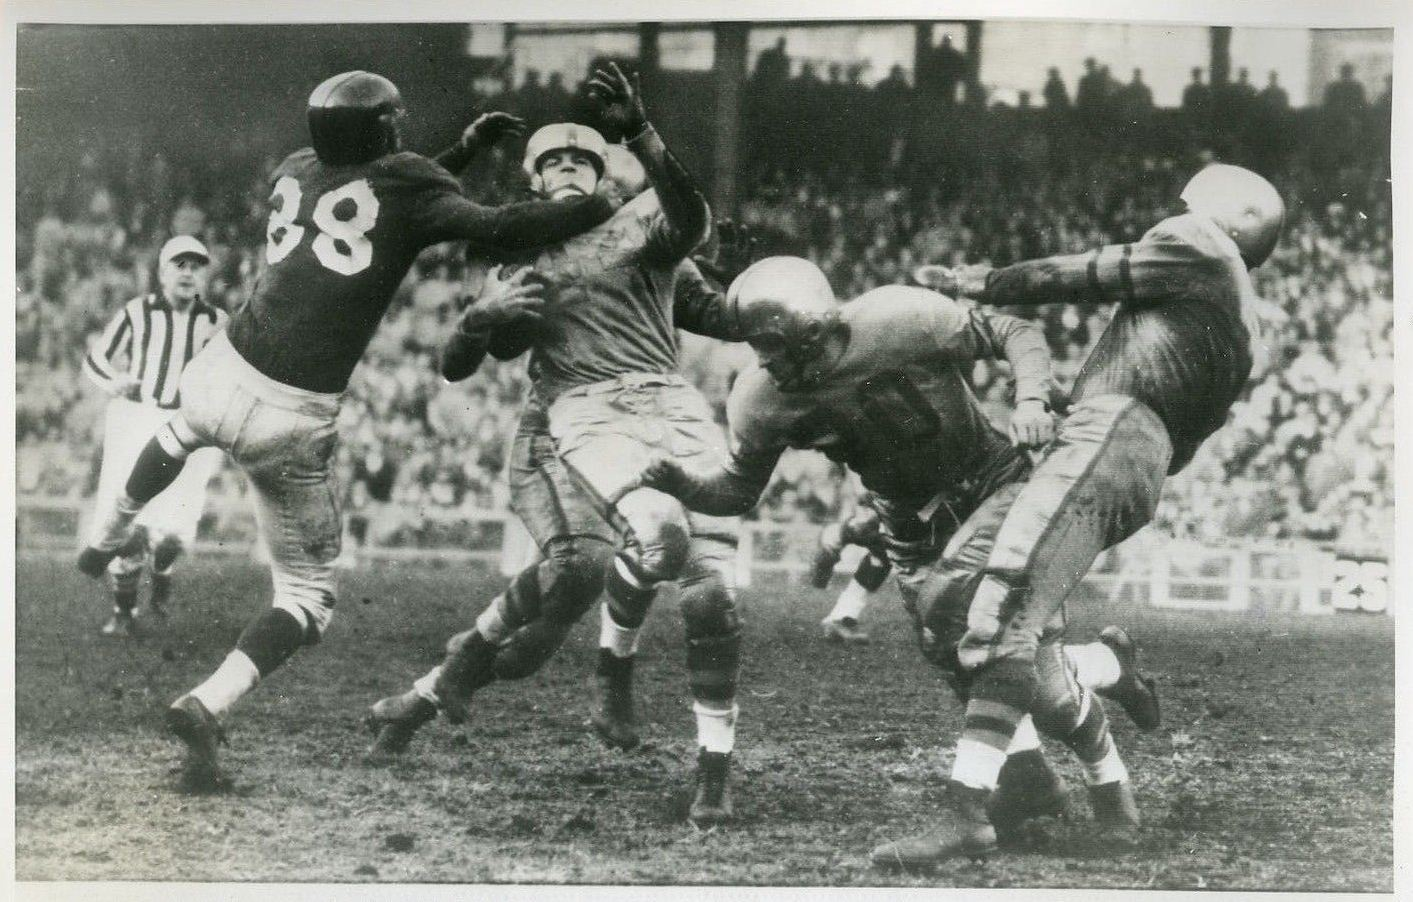 Don Menasco (38), New York Giants (November 16,1952)